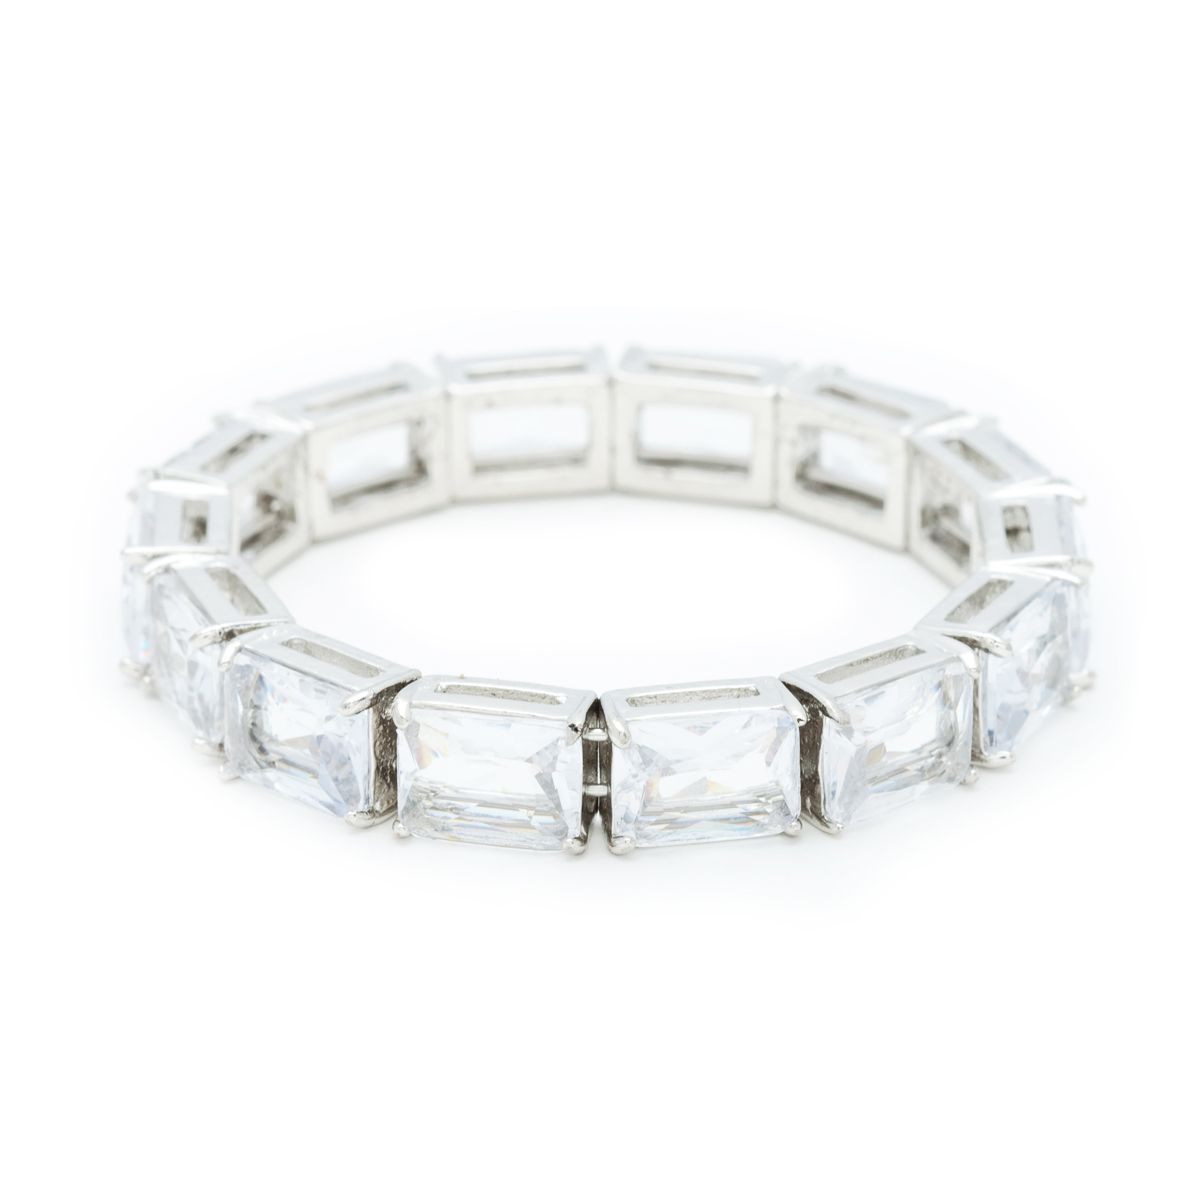 If you're looking for an easy-on bit of shine offering the utmost in versatility, Leslie is just the answer. This stretch bracelet features shimmering clear baguette cut crystals against silver. Leslie is the utmost in classically simple elegance.  $64